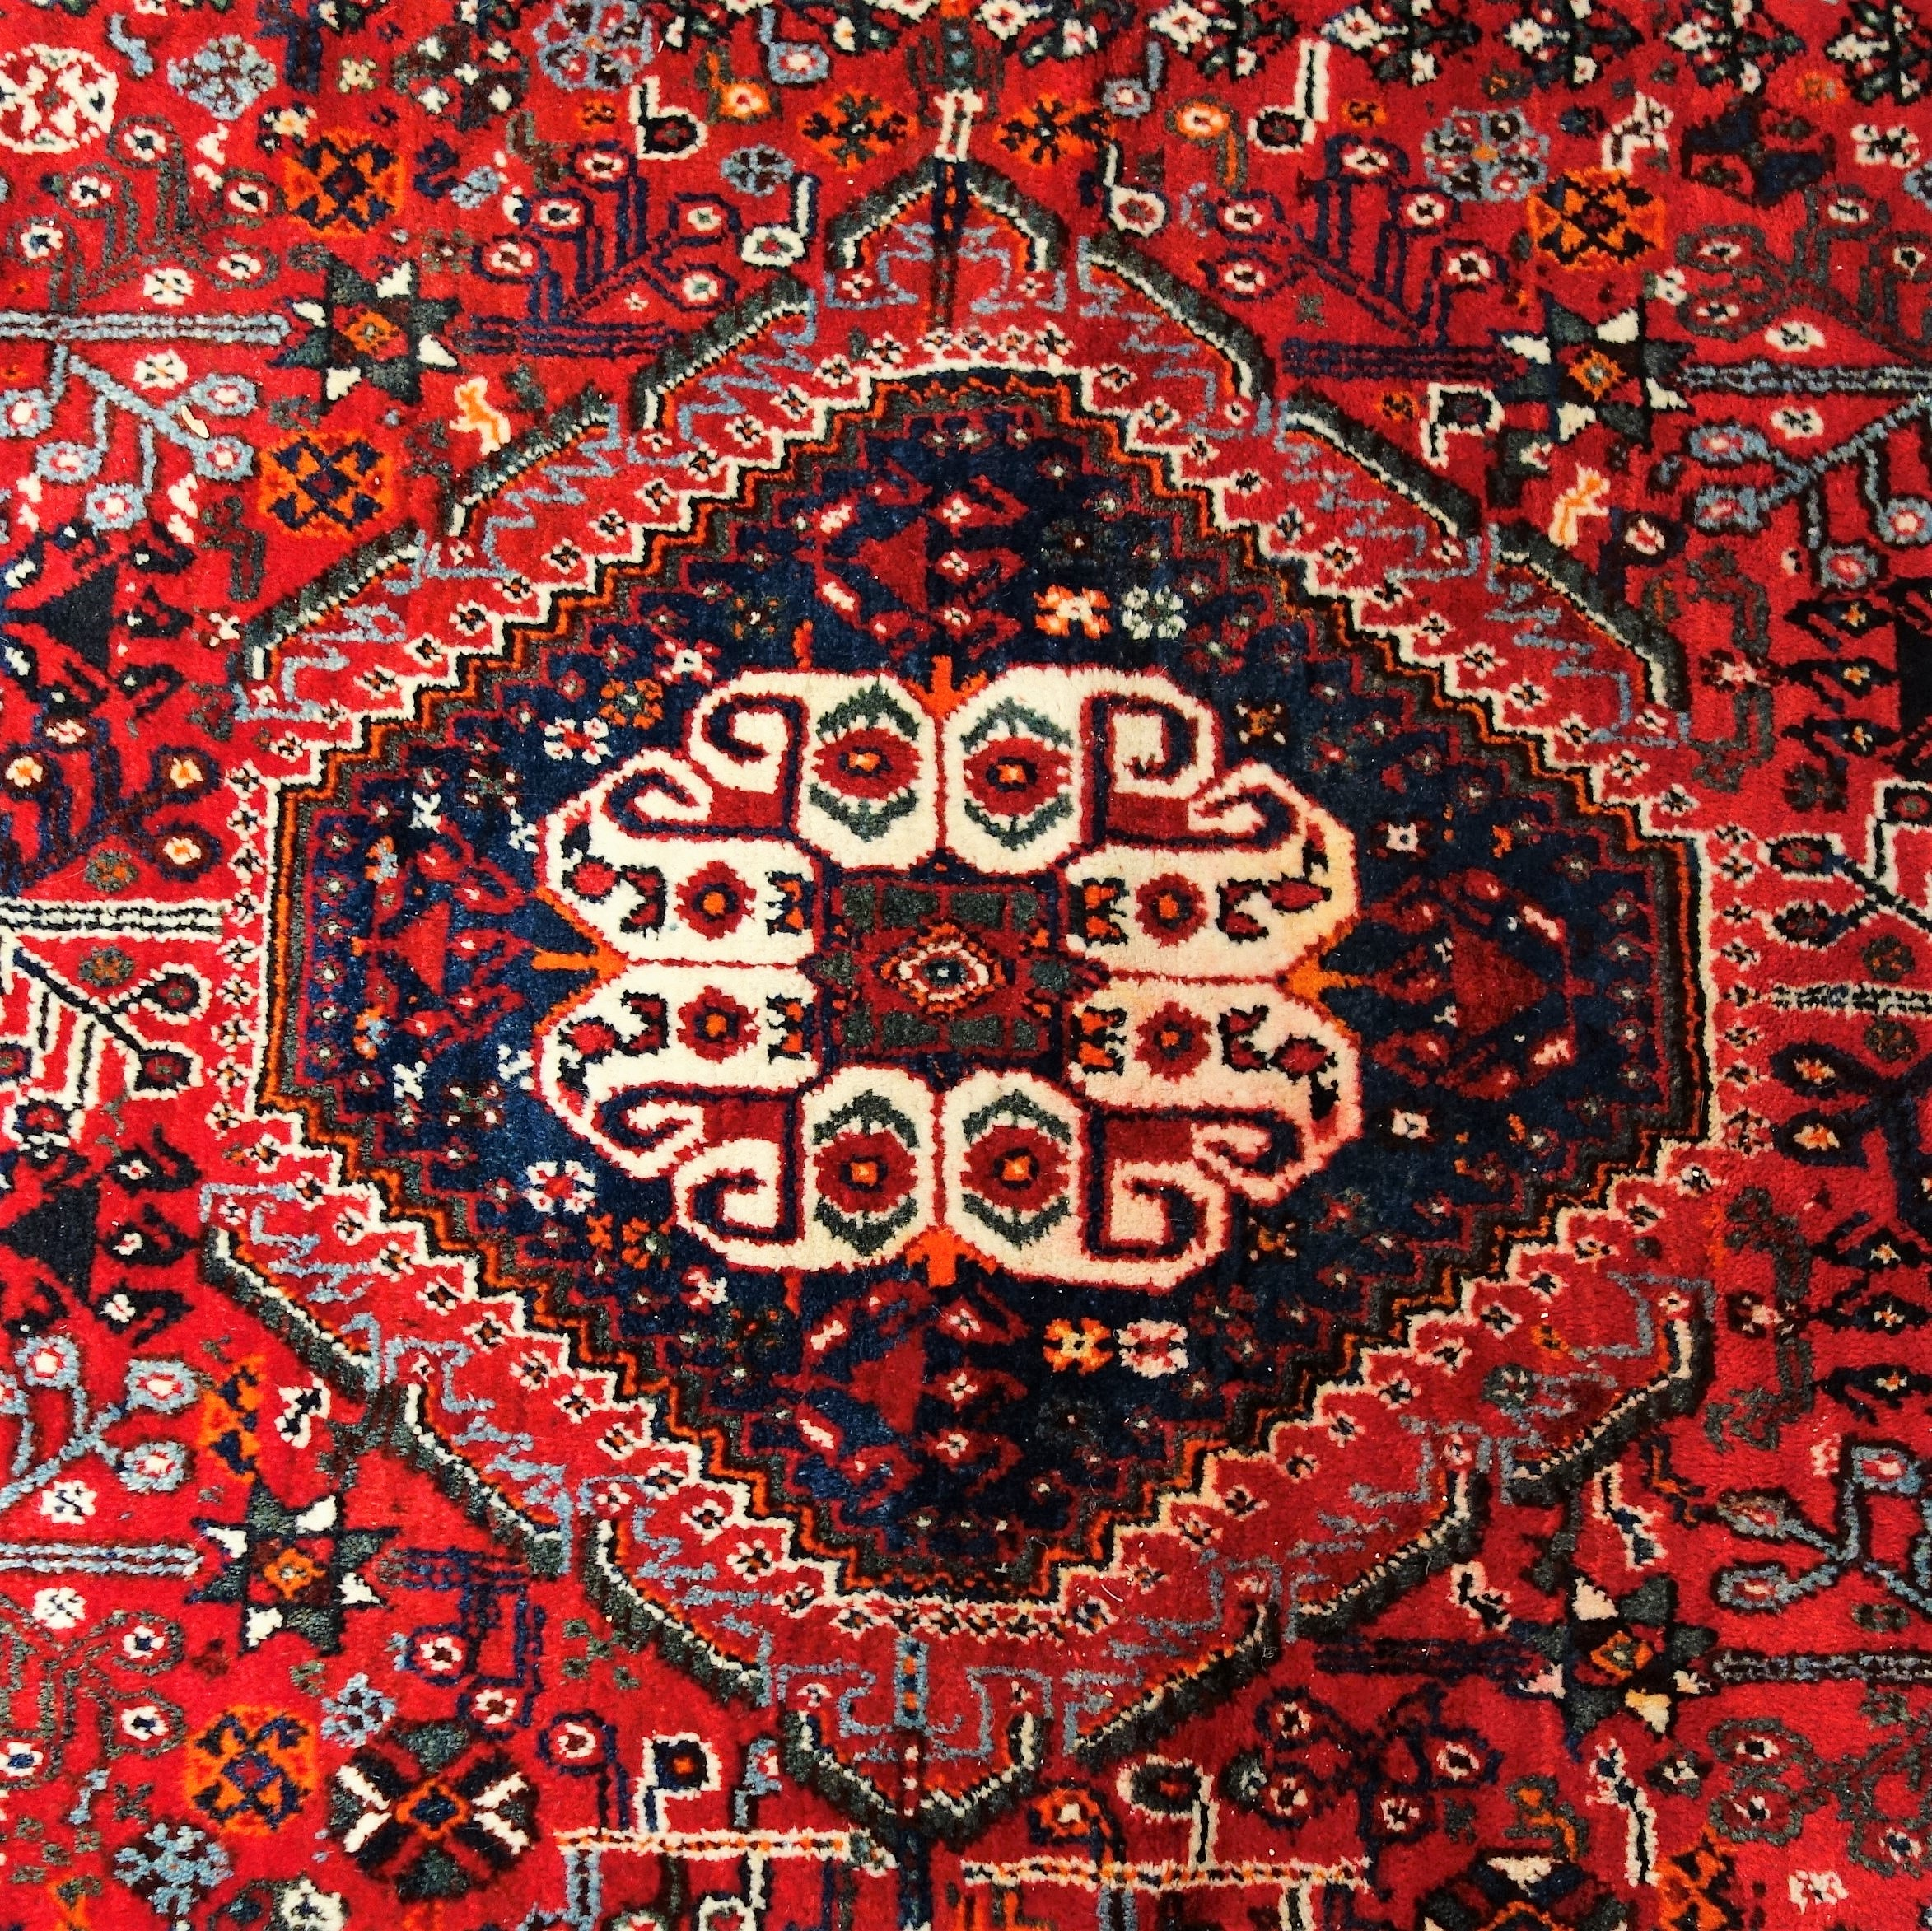 Authentic Hand-Knotted Wool Persian Area Rug From Iran